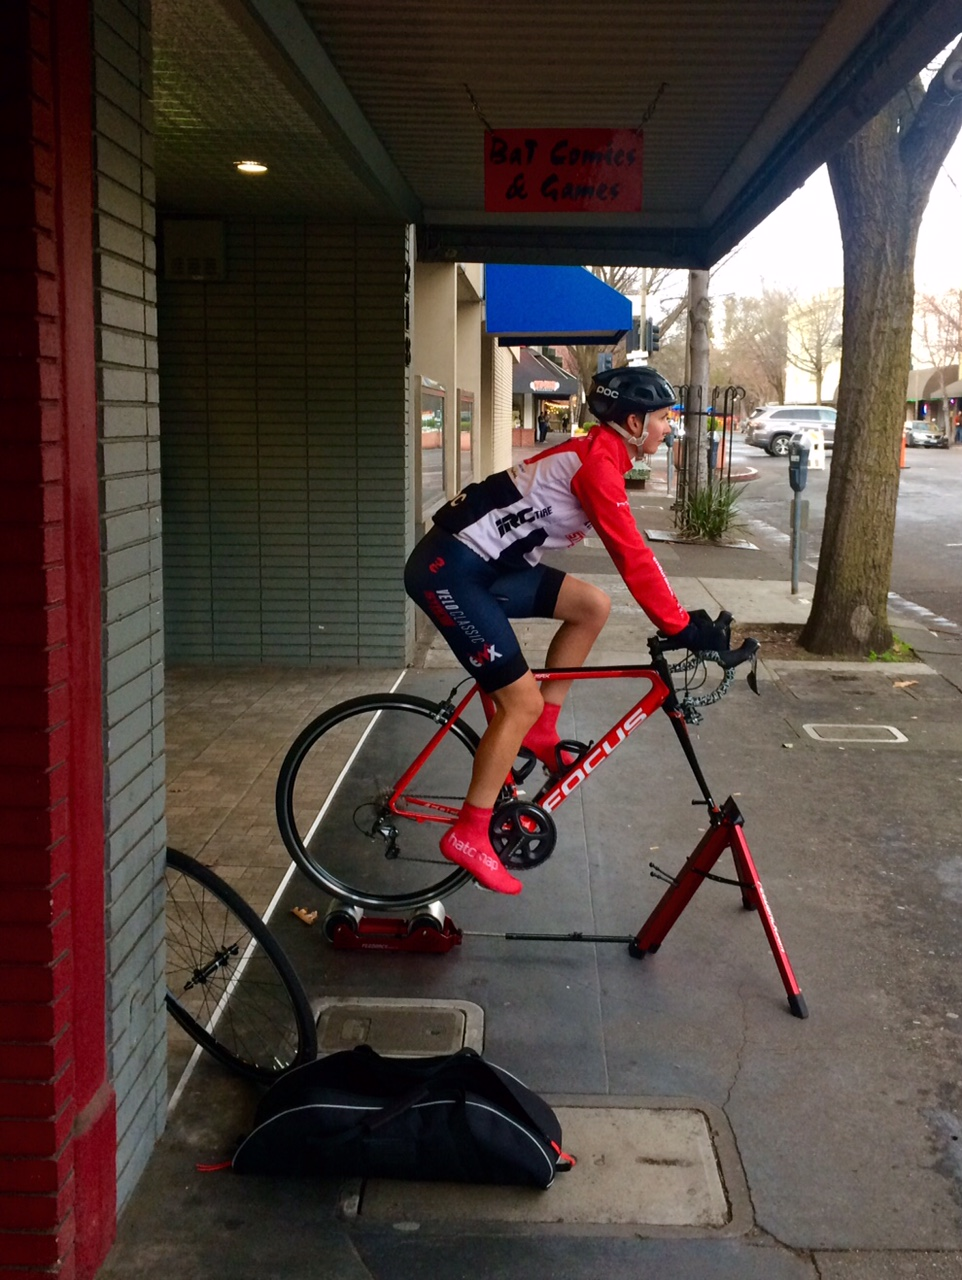 Kristen warming up for the crit on her Feedback Sports Omnium portable trainer.